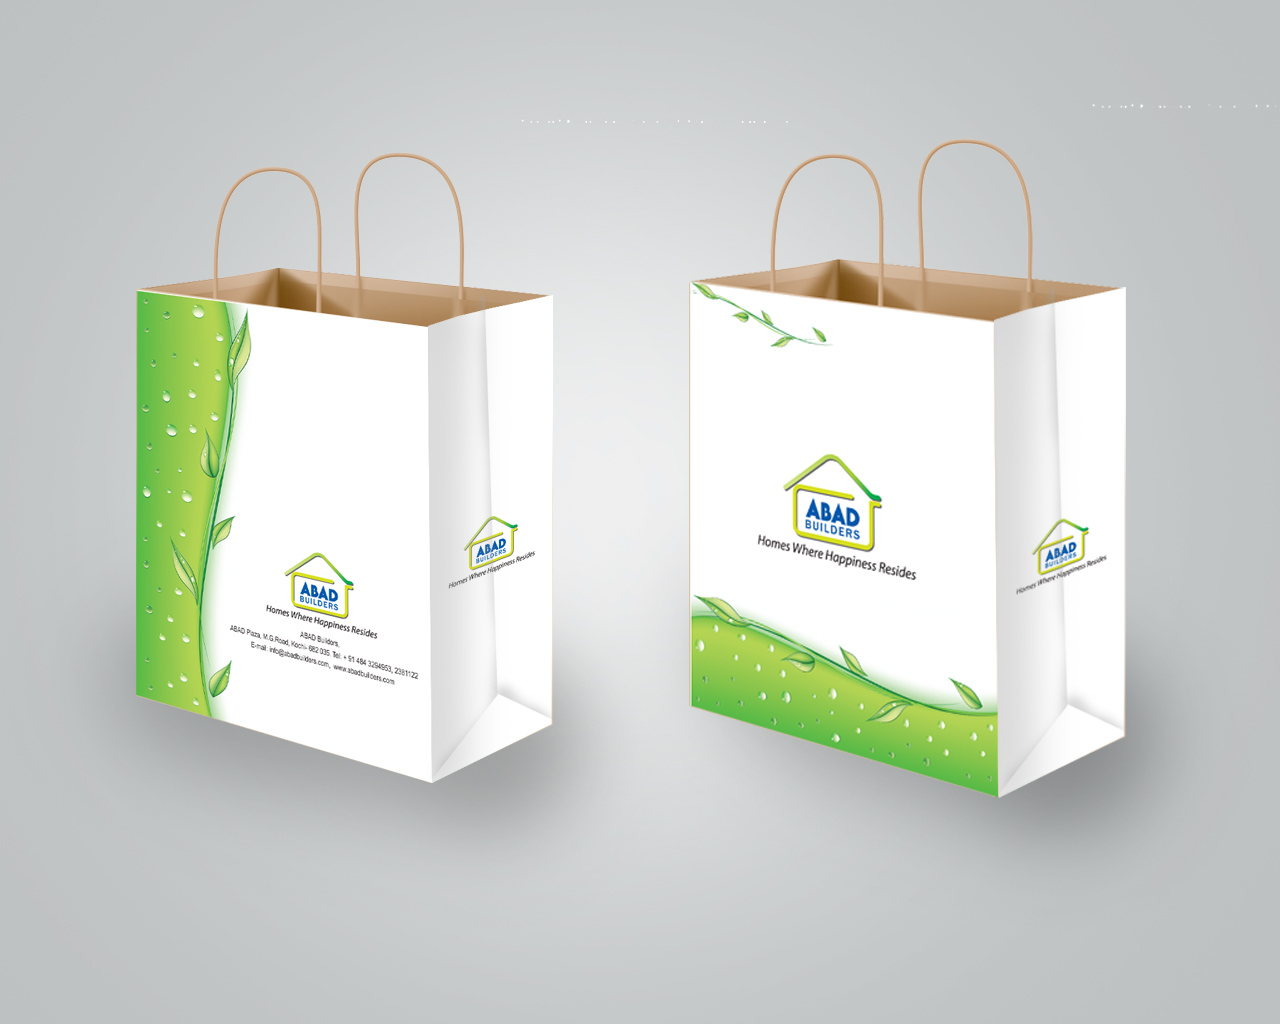 retail paper Create customized packaging for your retail business gift boxes, bags, tissue paper, wrapping paper and gift wrapping supplies at wholesale prices.